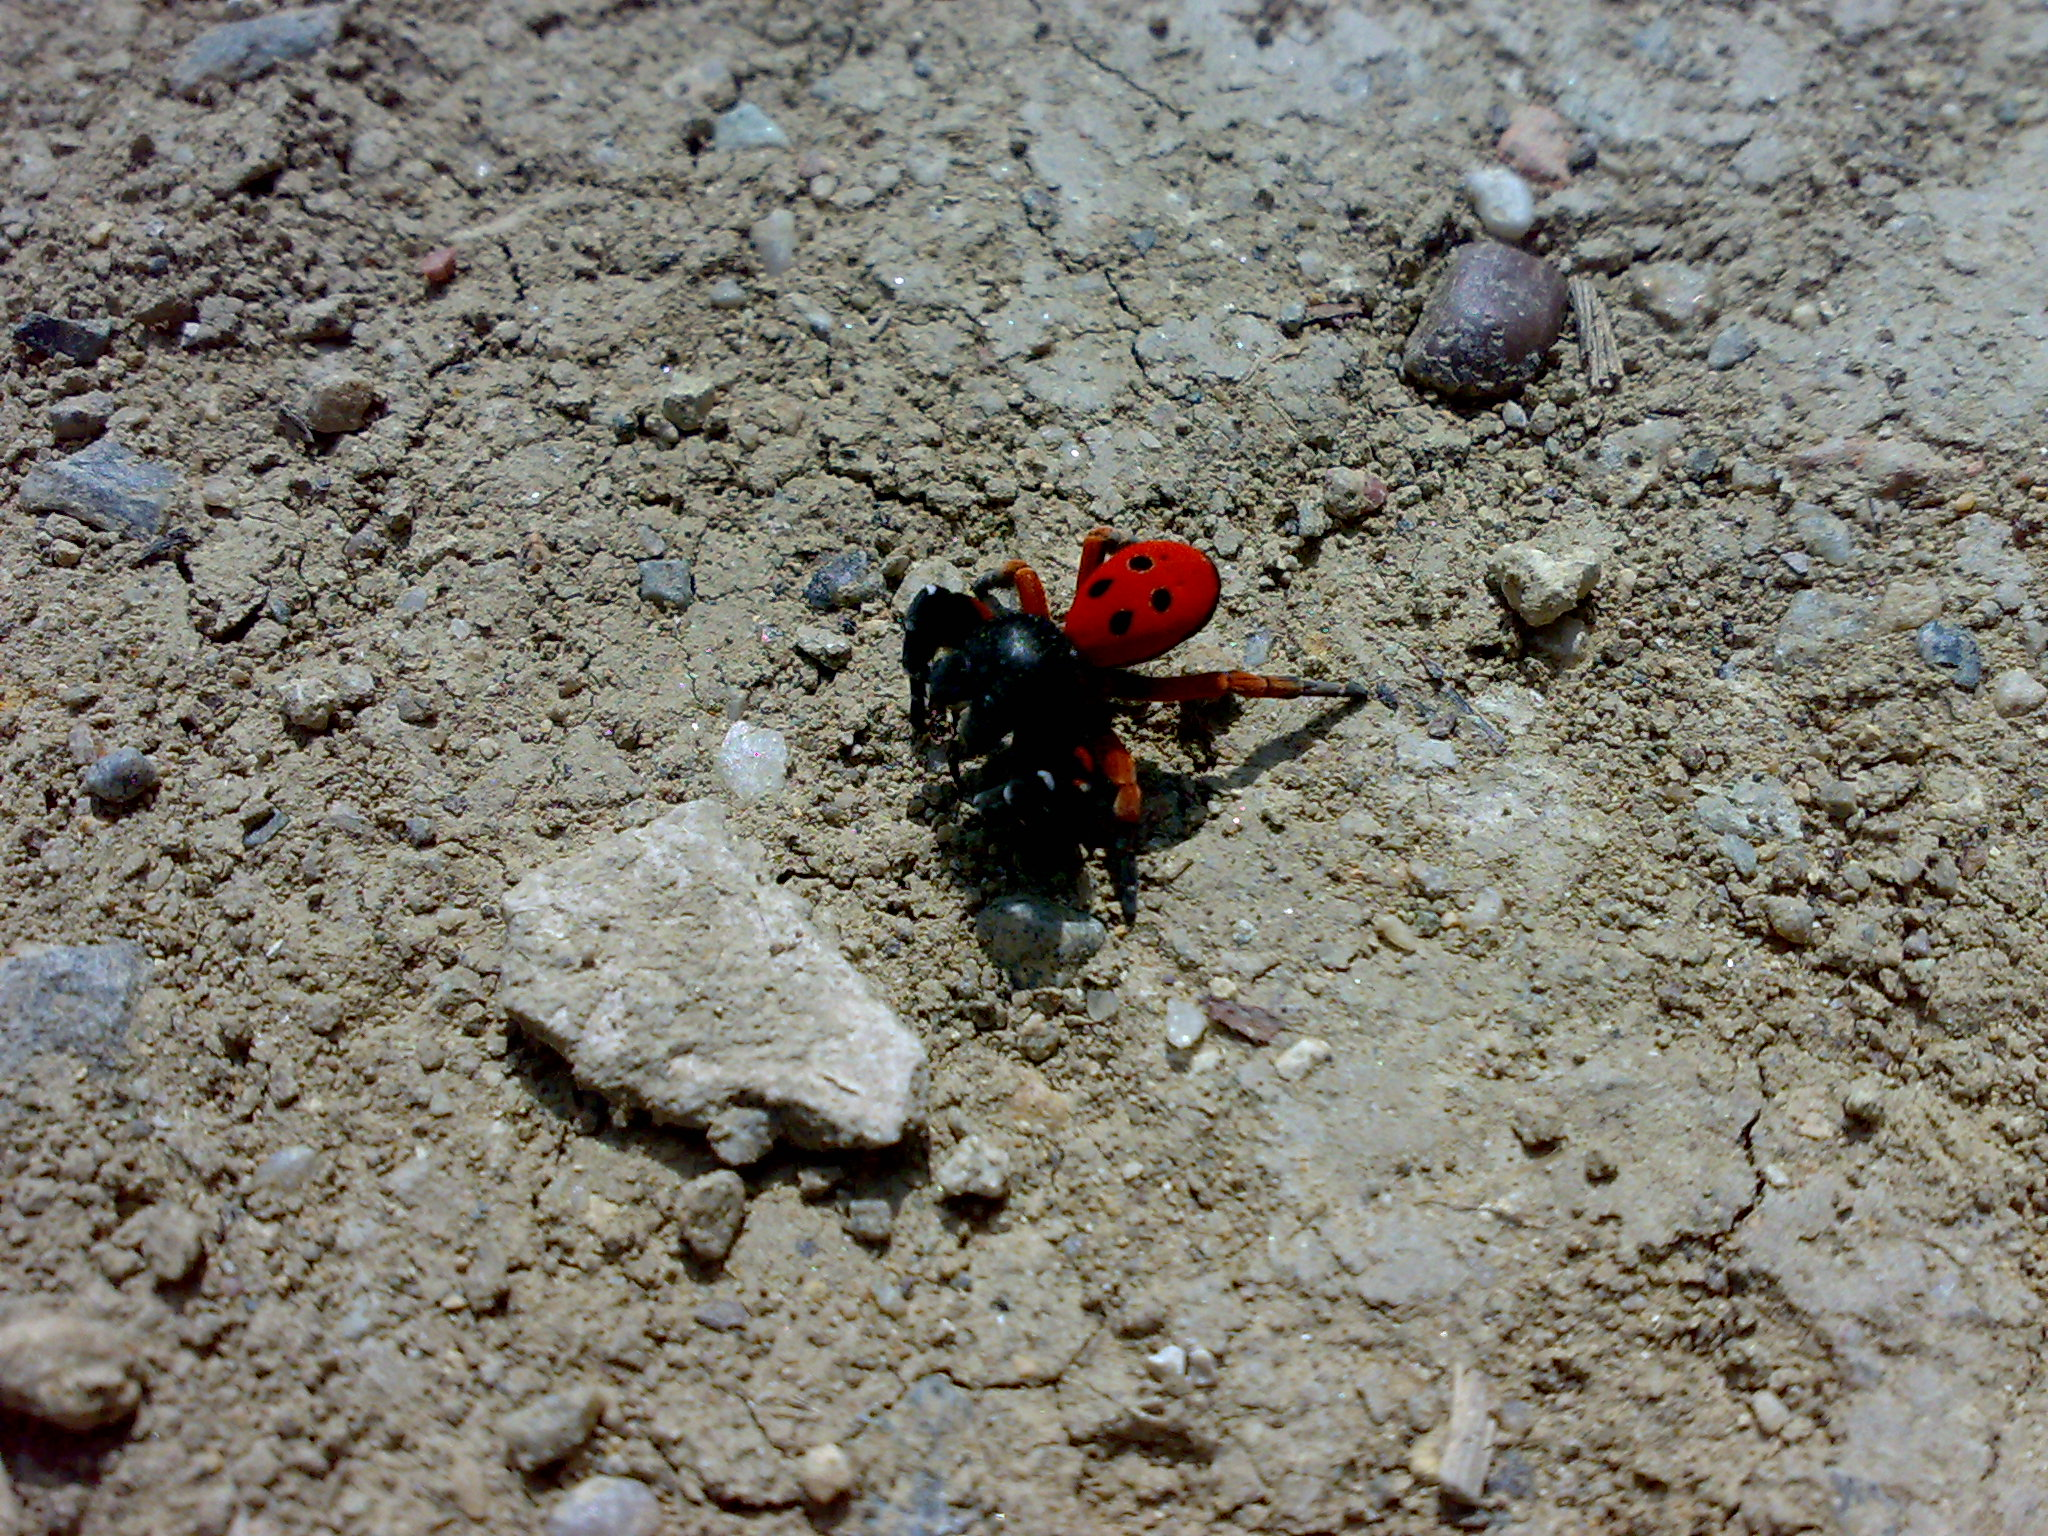 Black jumping spider with red dot - photo#14